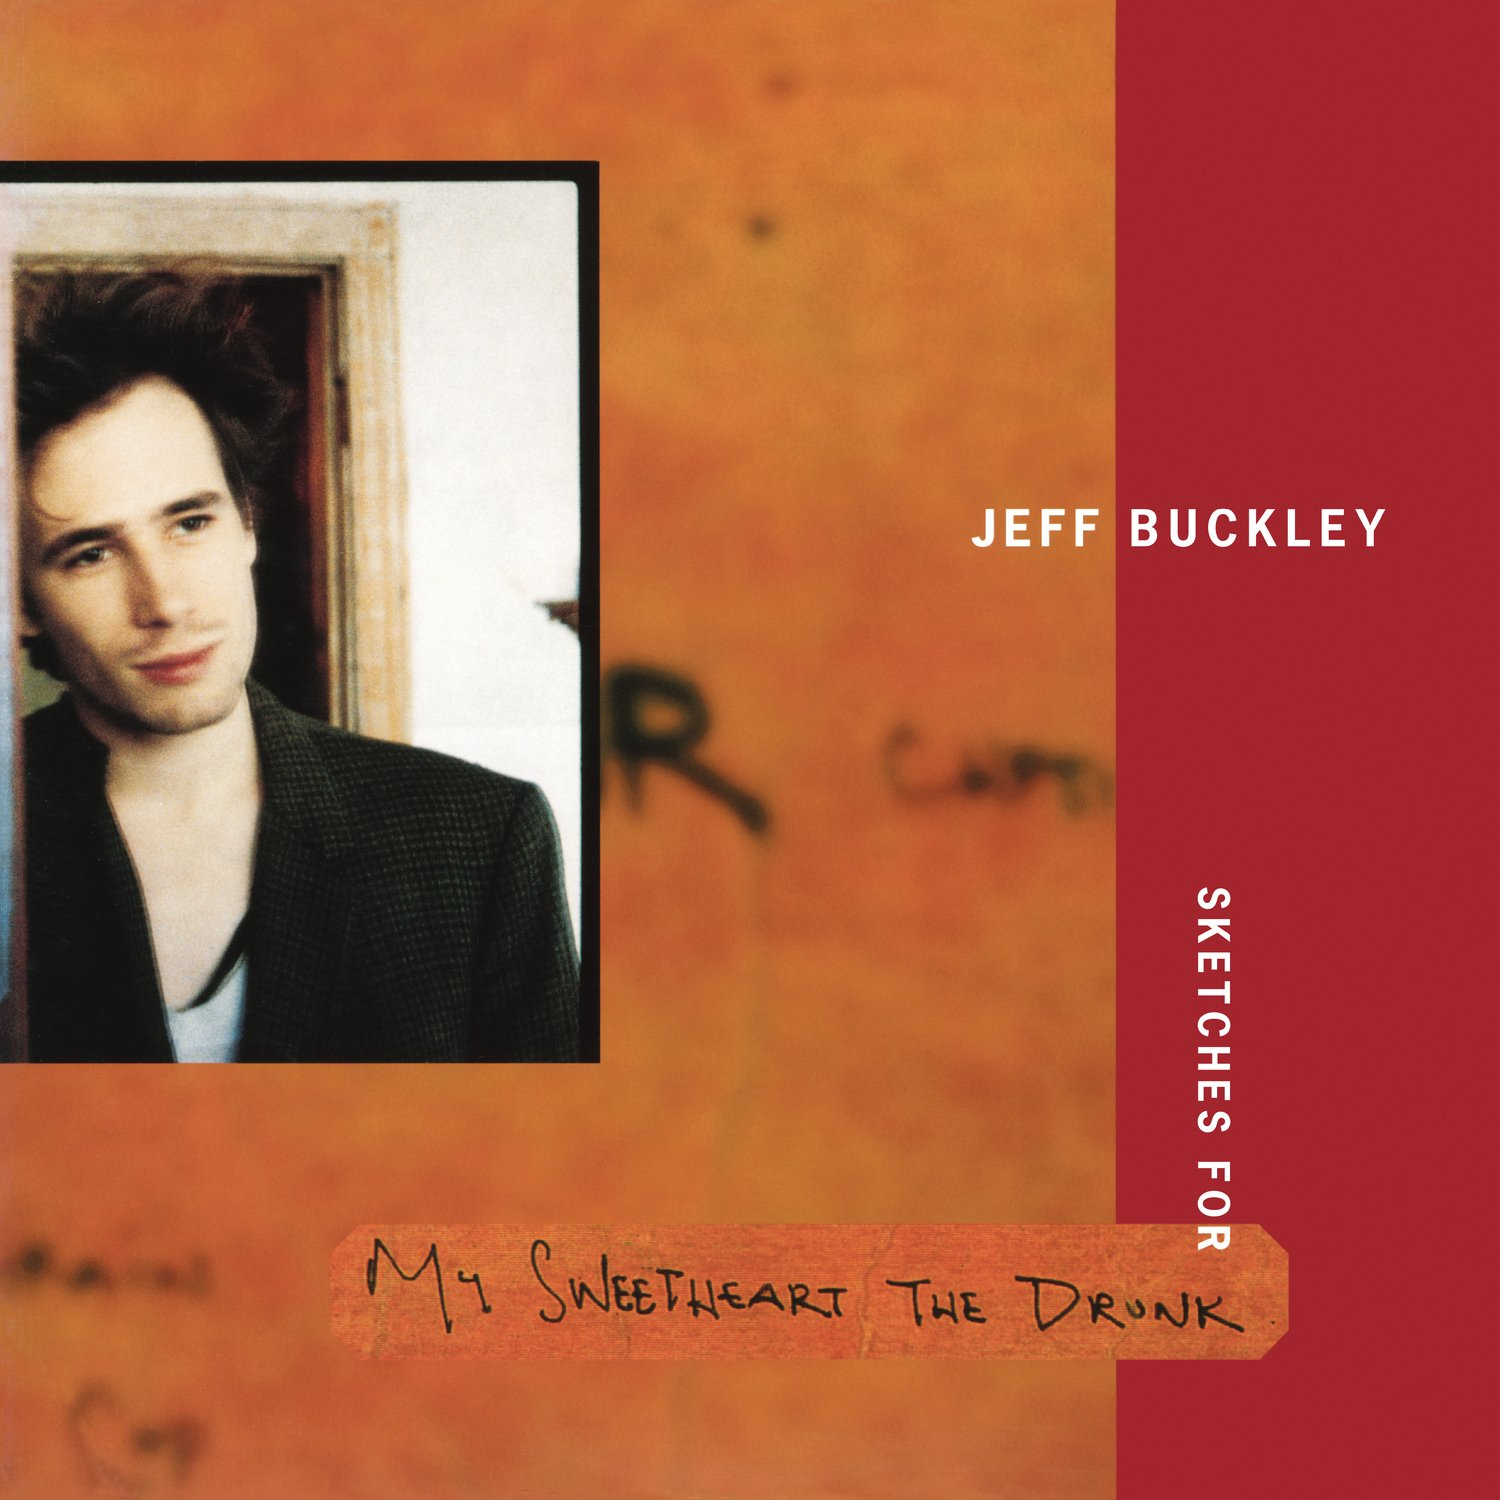 Jeff Buckley – Sketches For My Sweetheart The Drunk (1998) [FLAC]